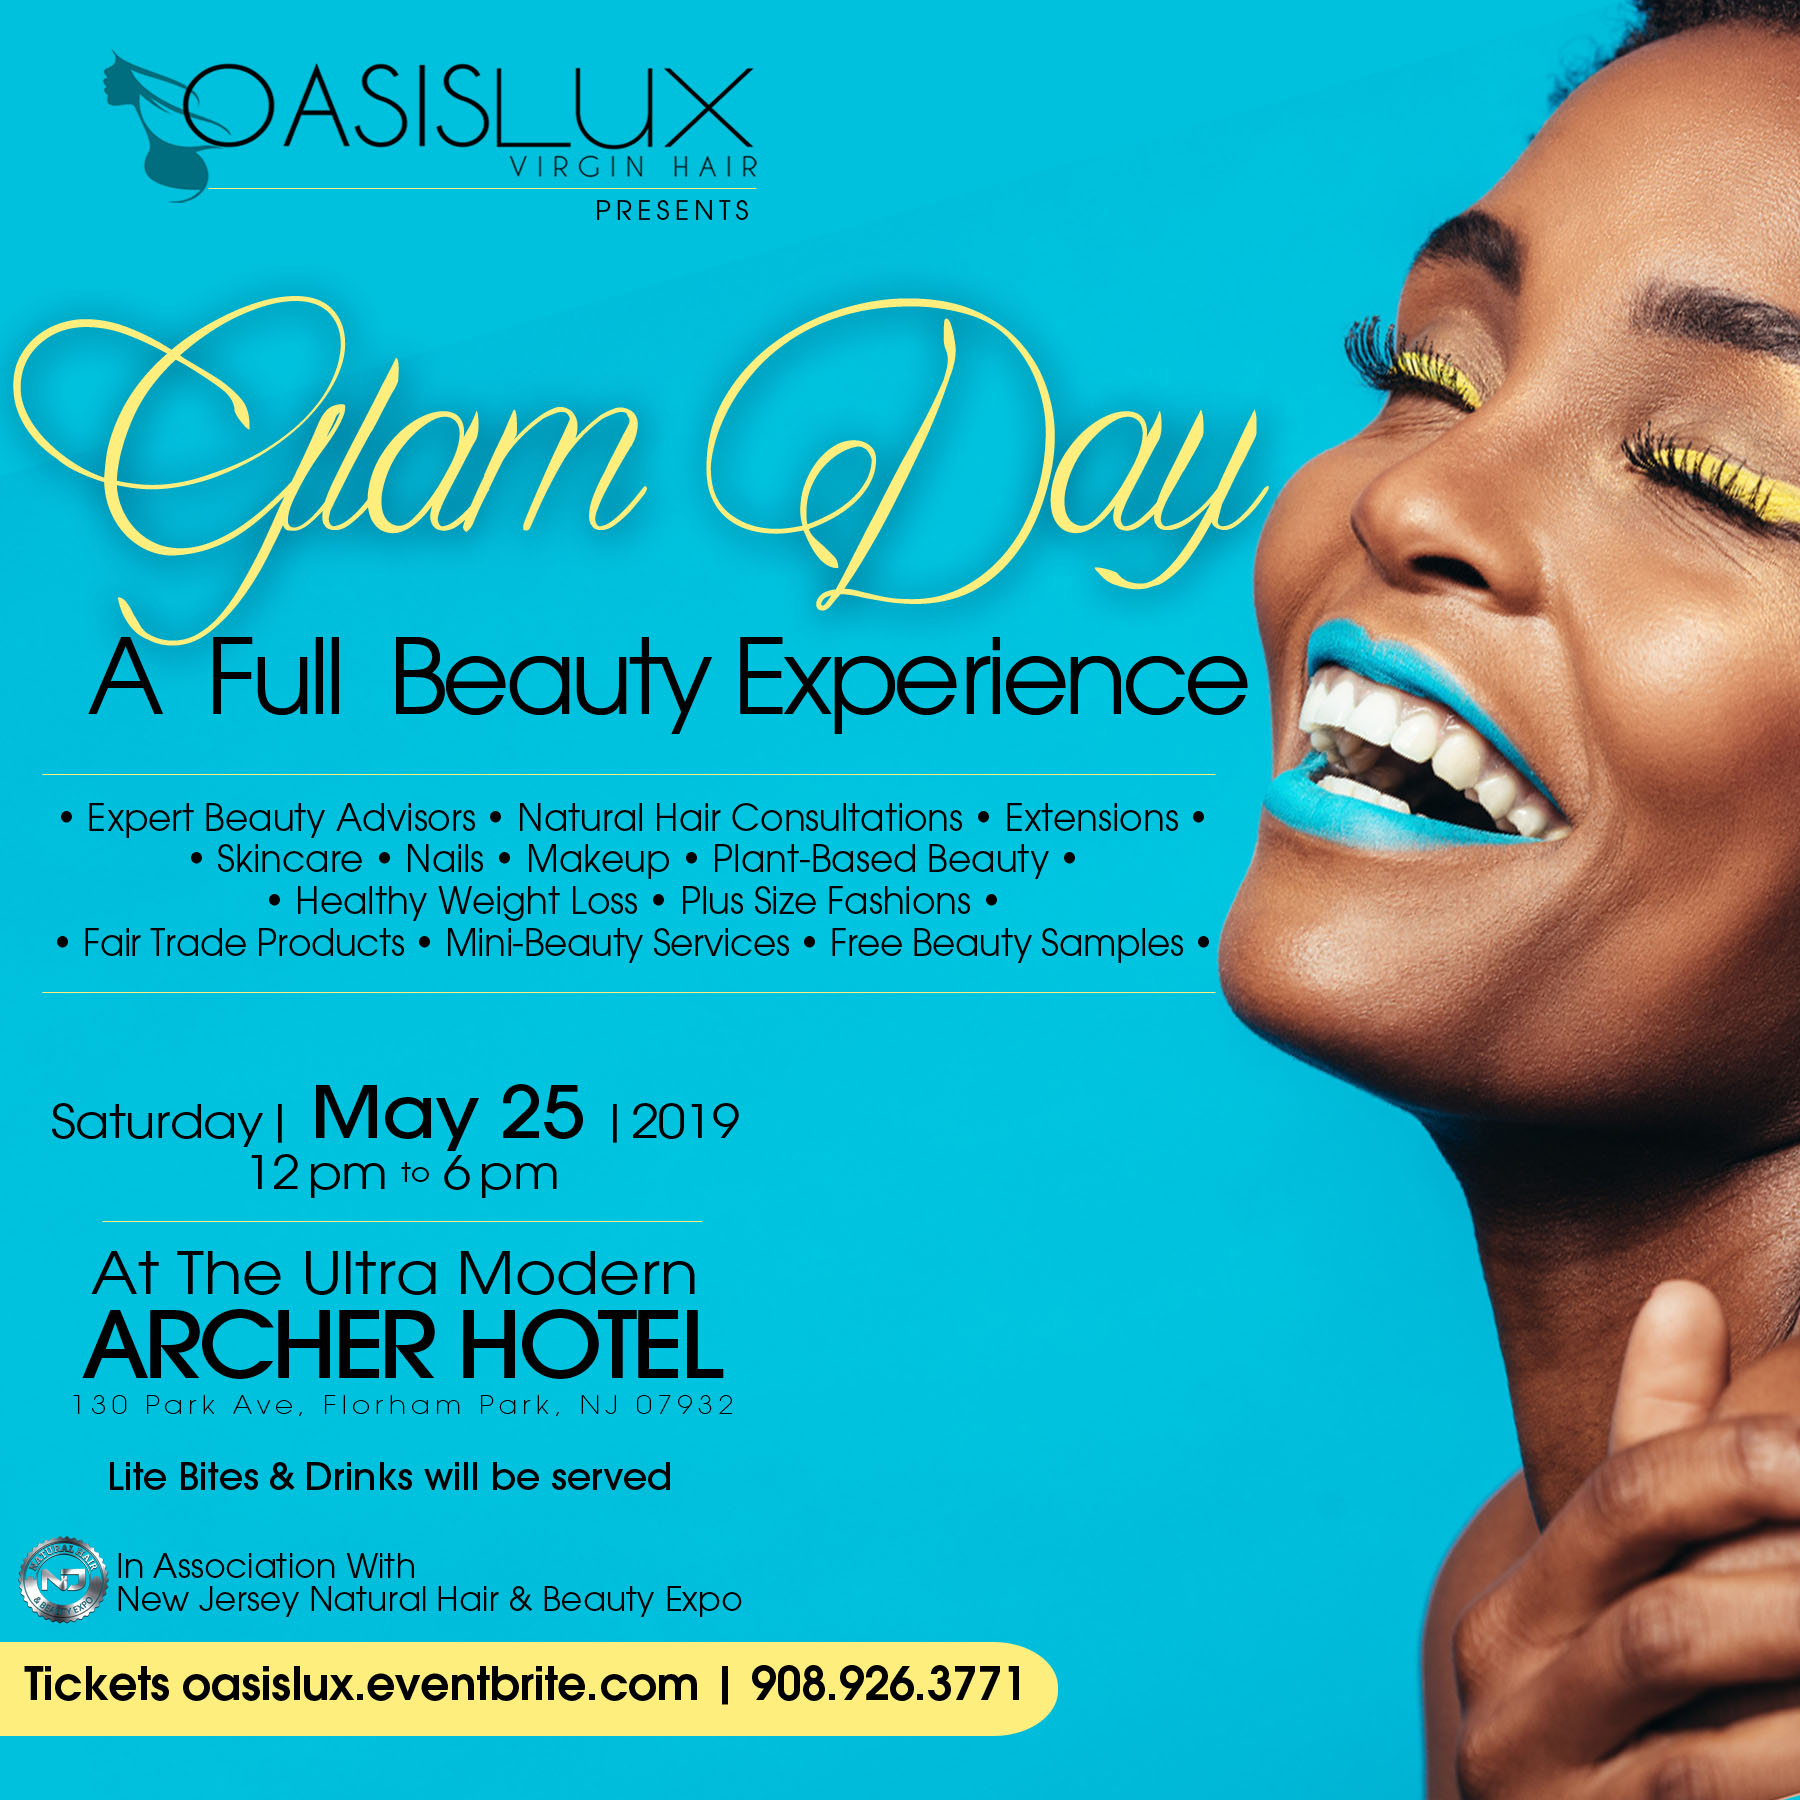 OASIS Lux Presents - A Full Beauty Experience